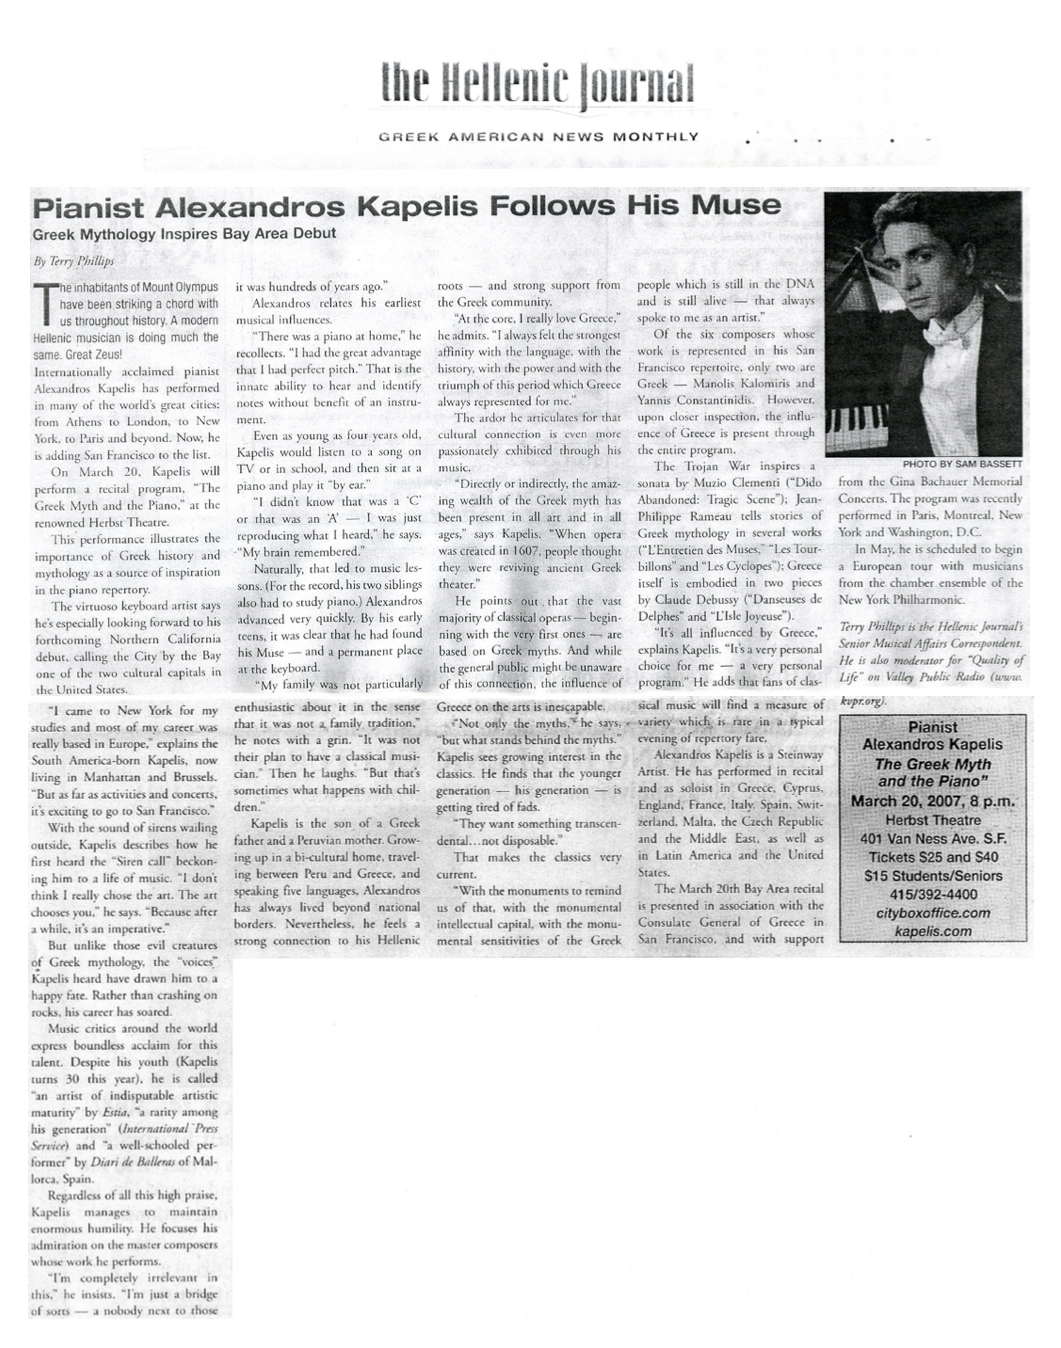 HELLENIC JOURNAL, New York